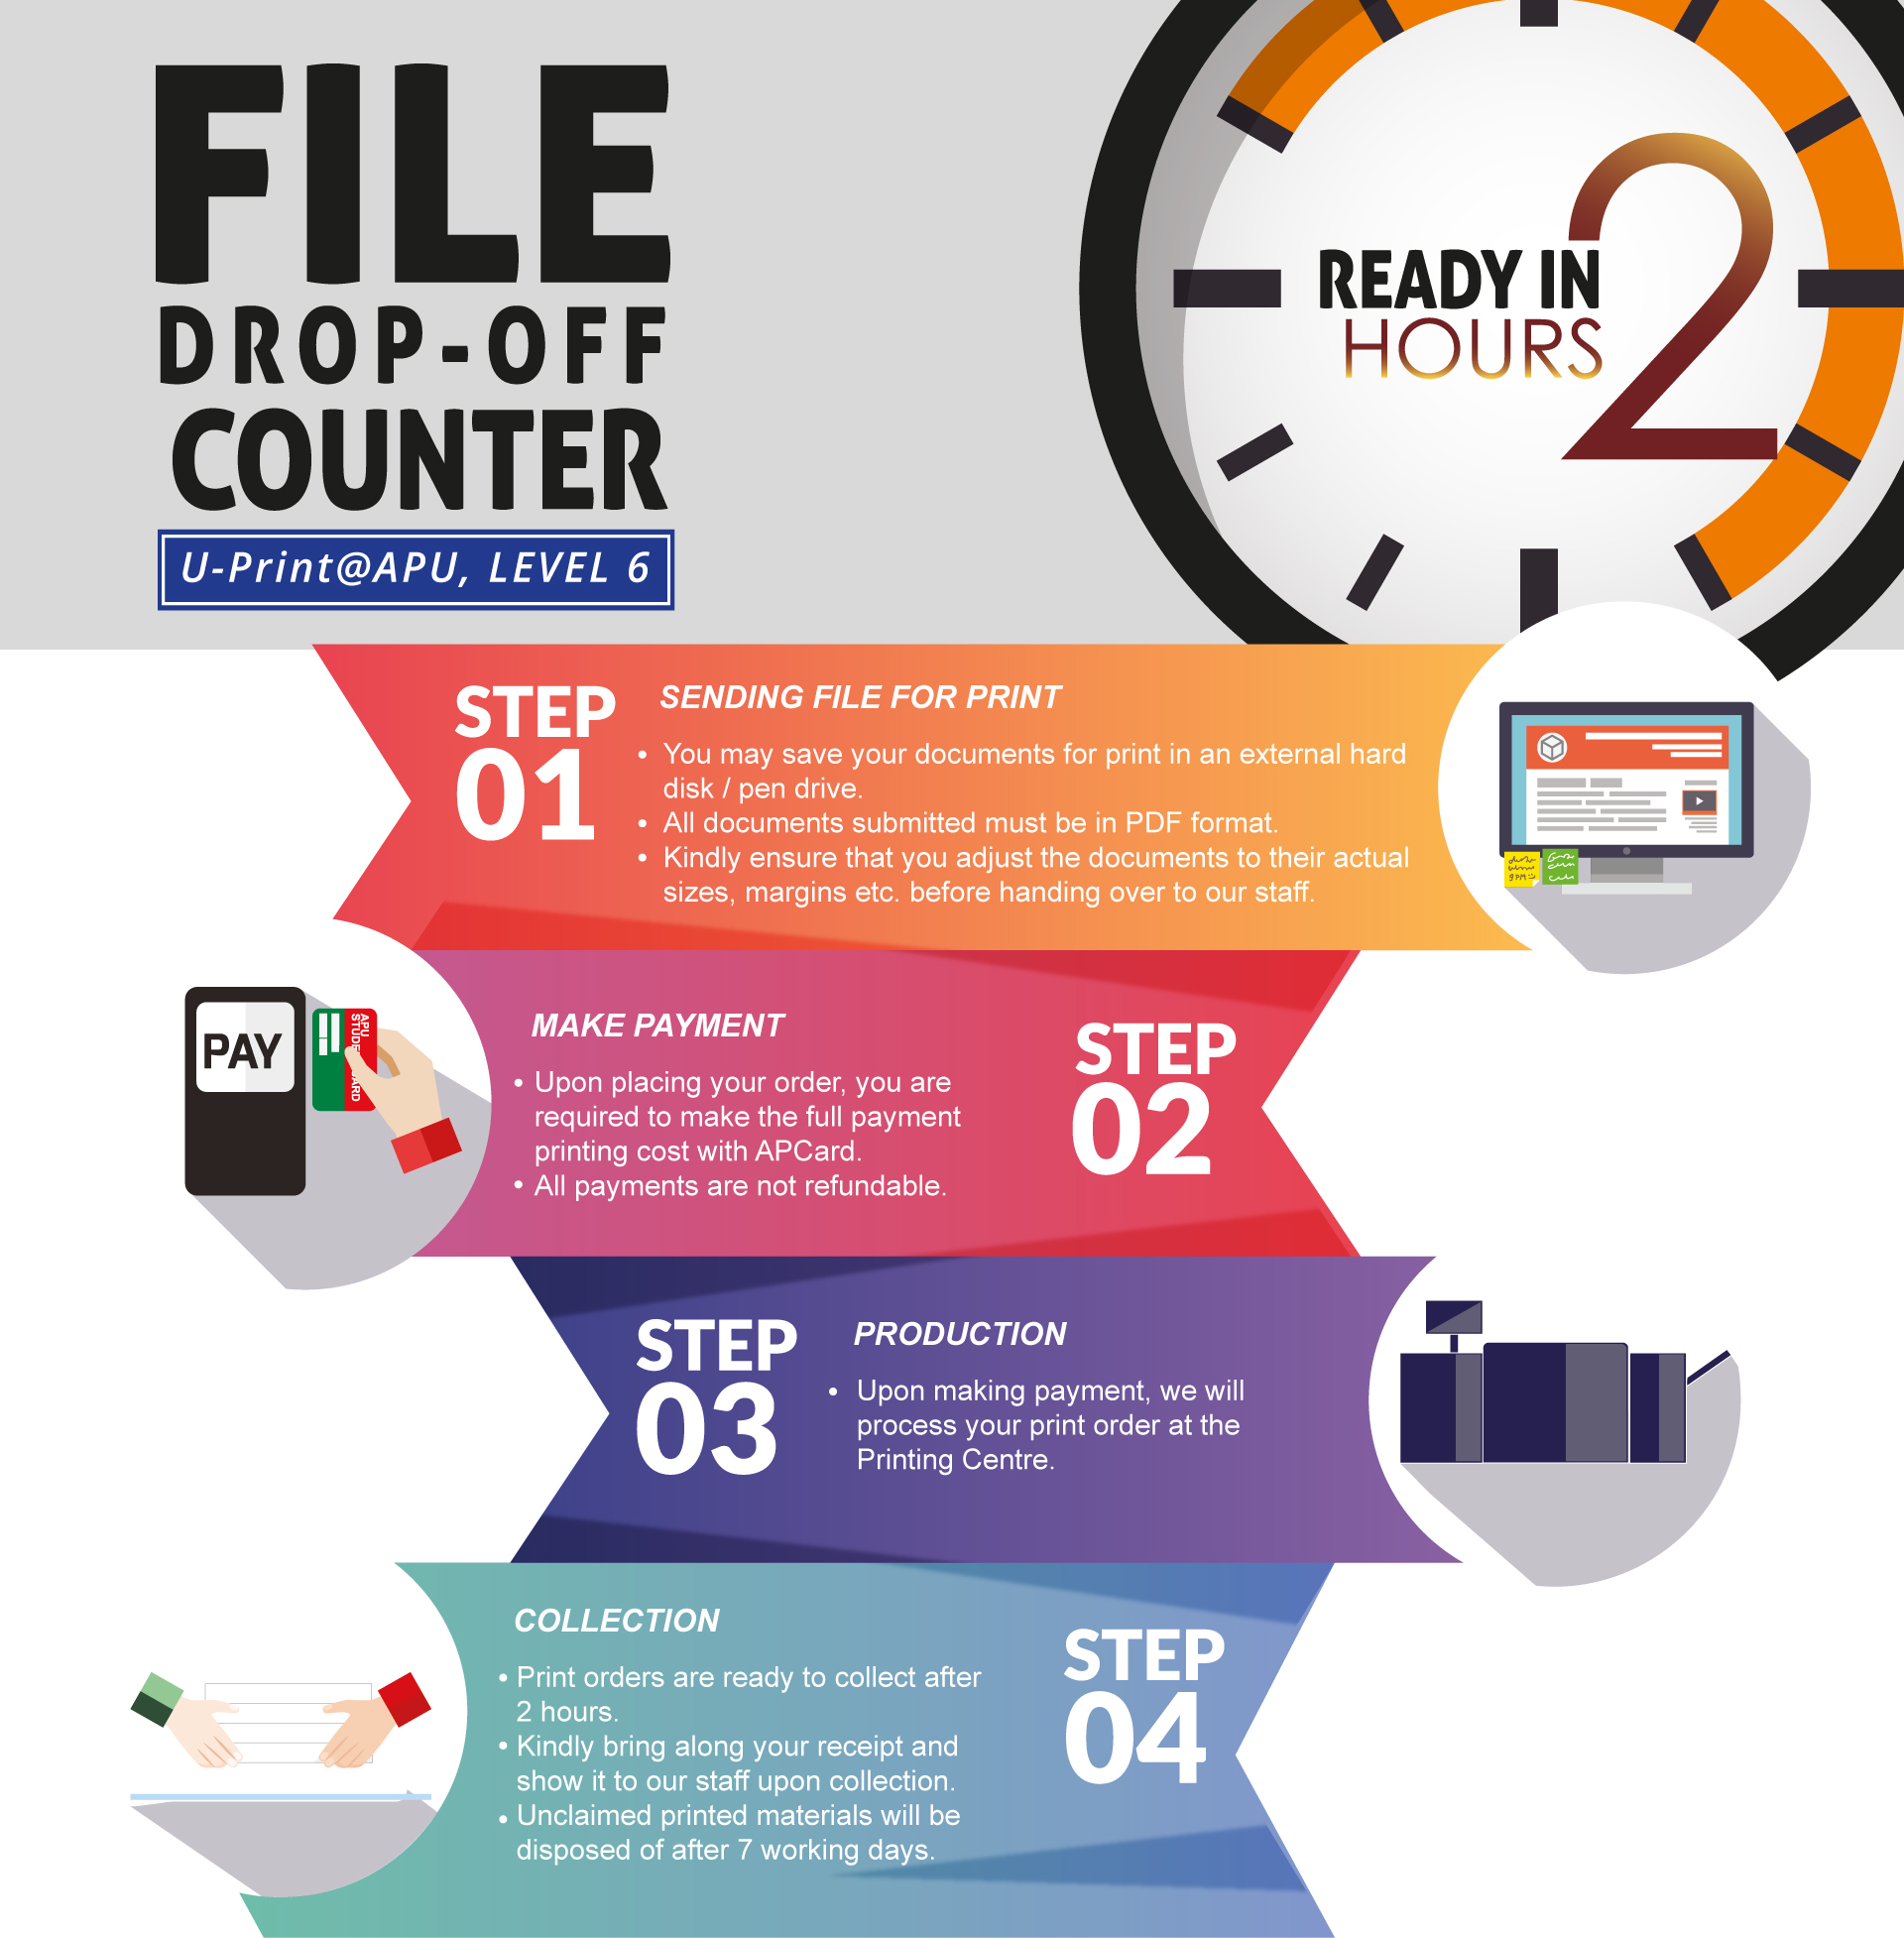 FILE DROP-OFF COUNTER @ PRINTING CENTRE, LEVEL 6